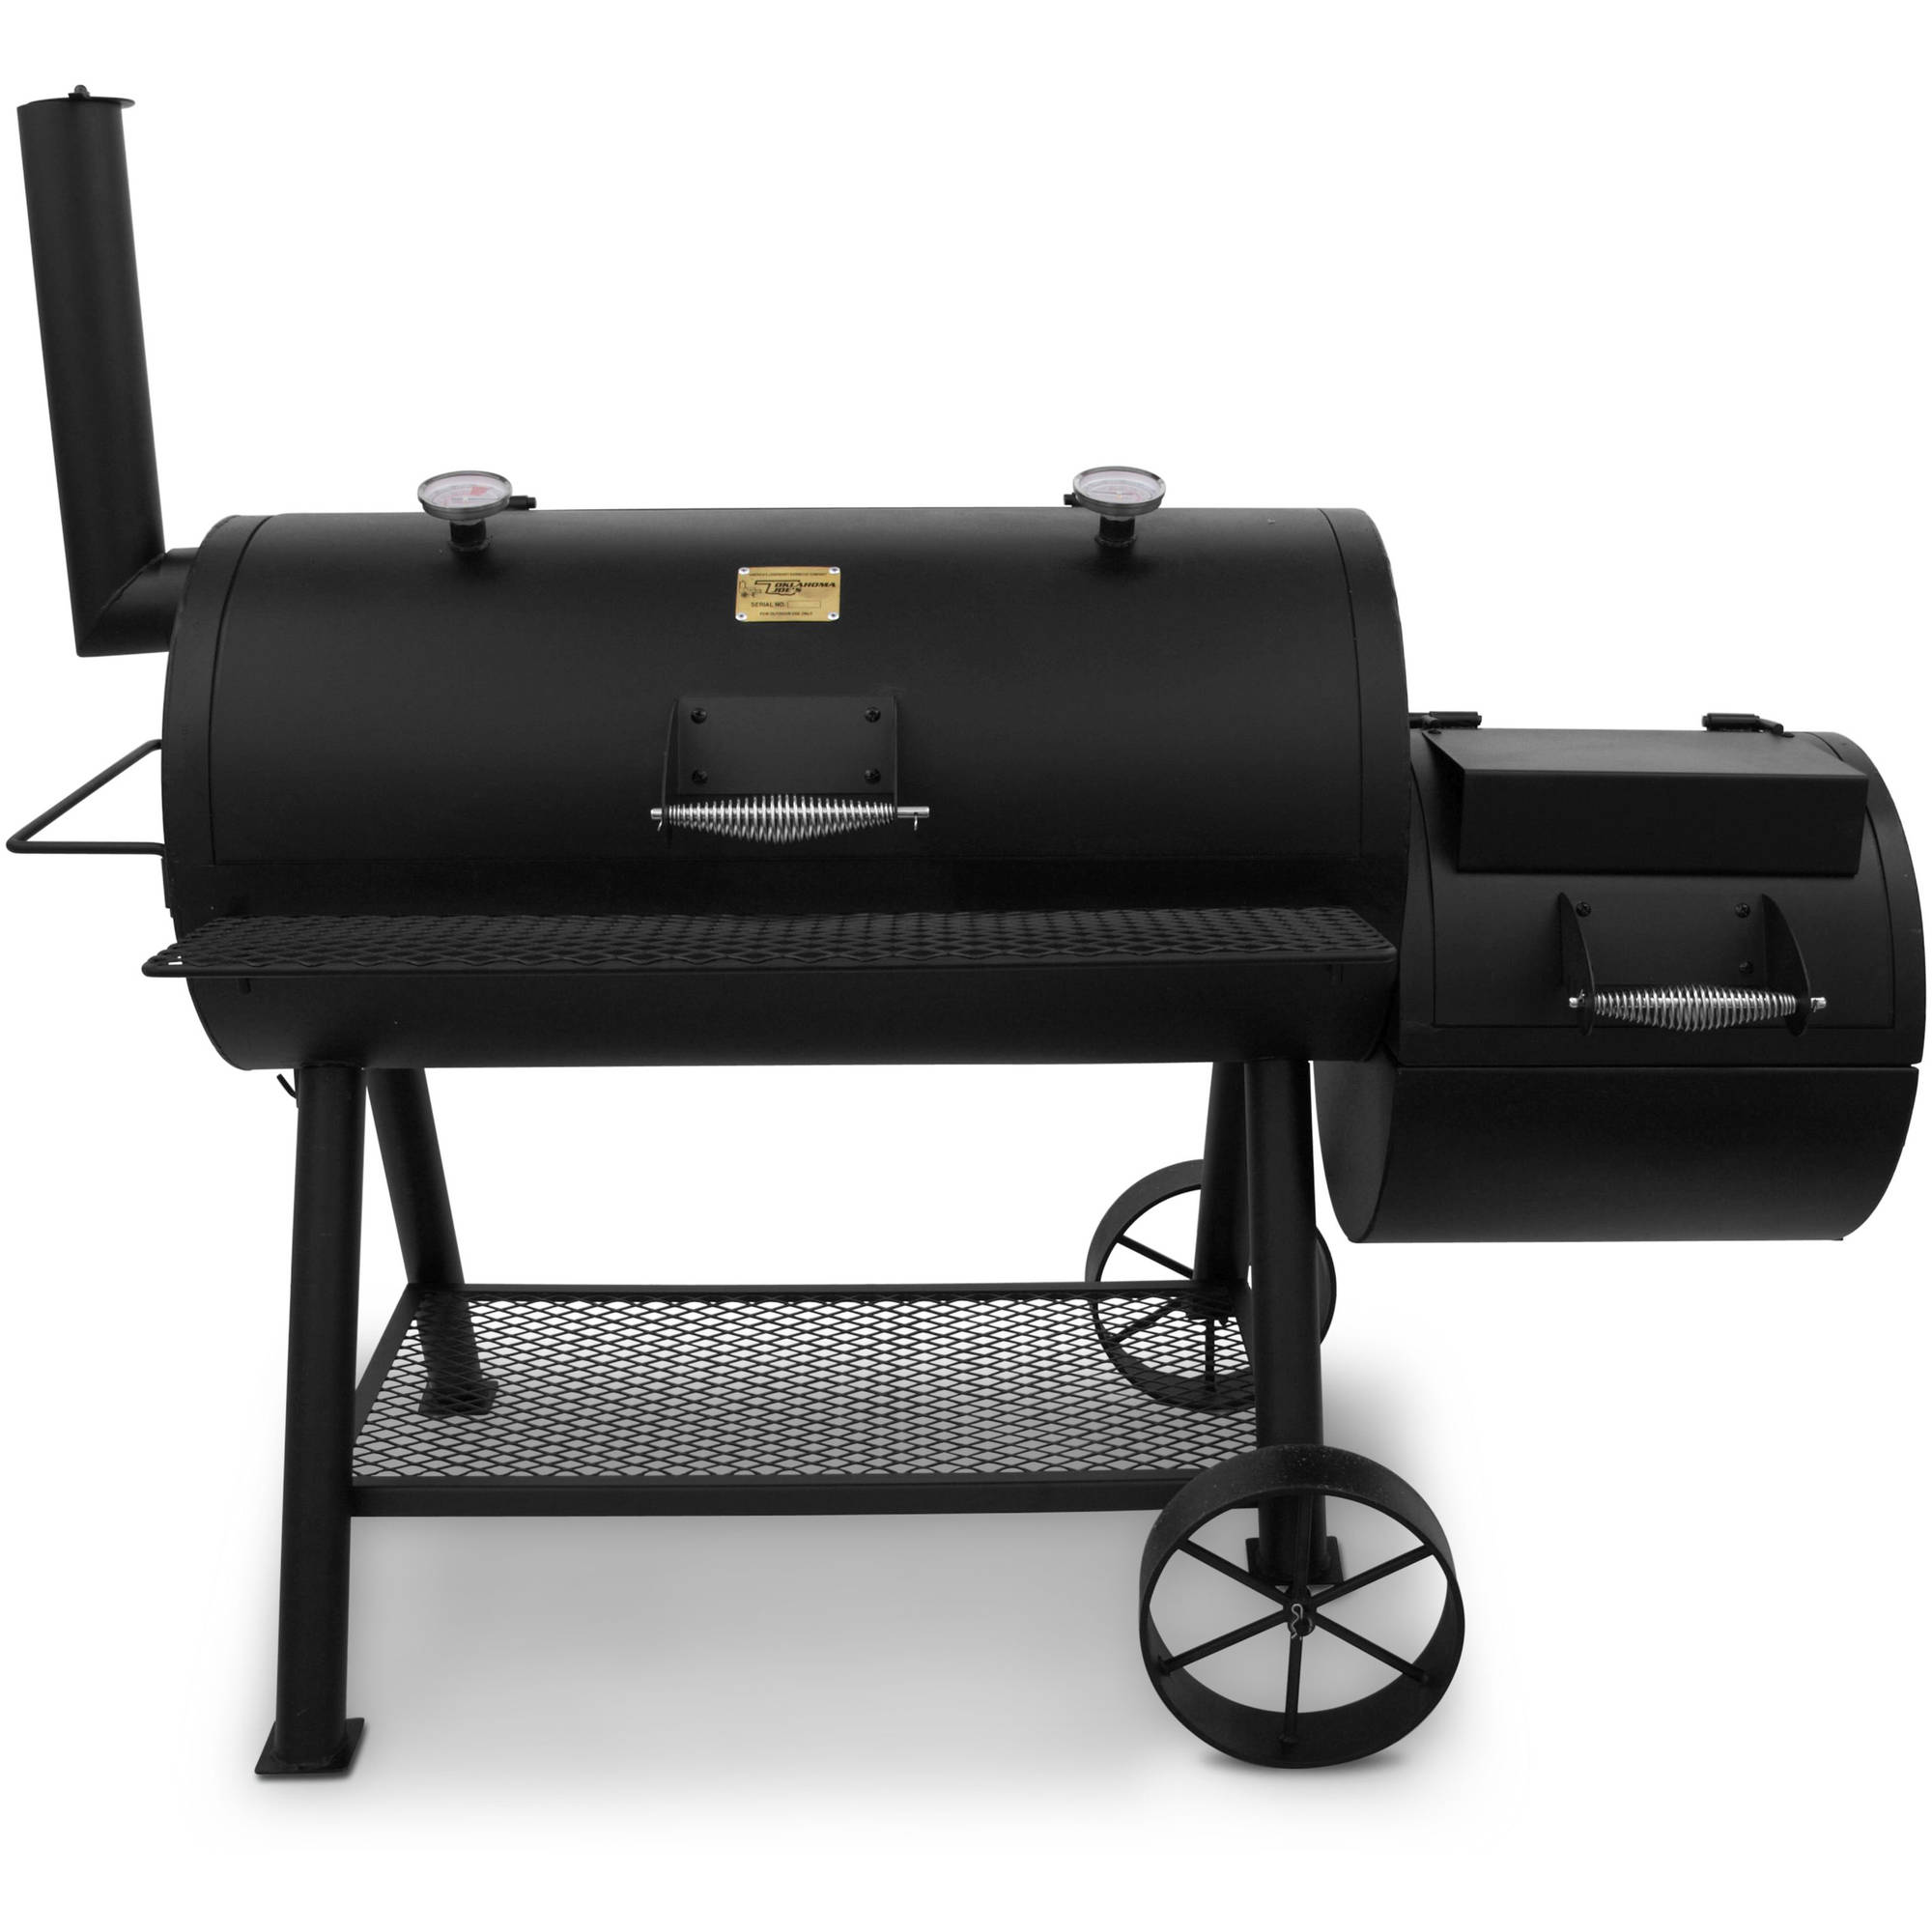 Char-Broil Oklahoma Joe's Longhorn Offset Smoker/Grill